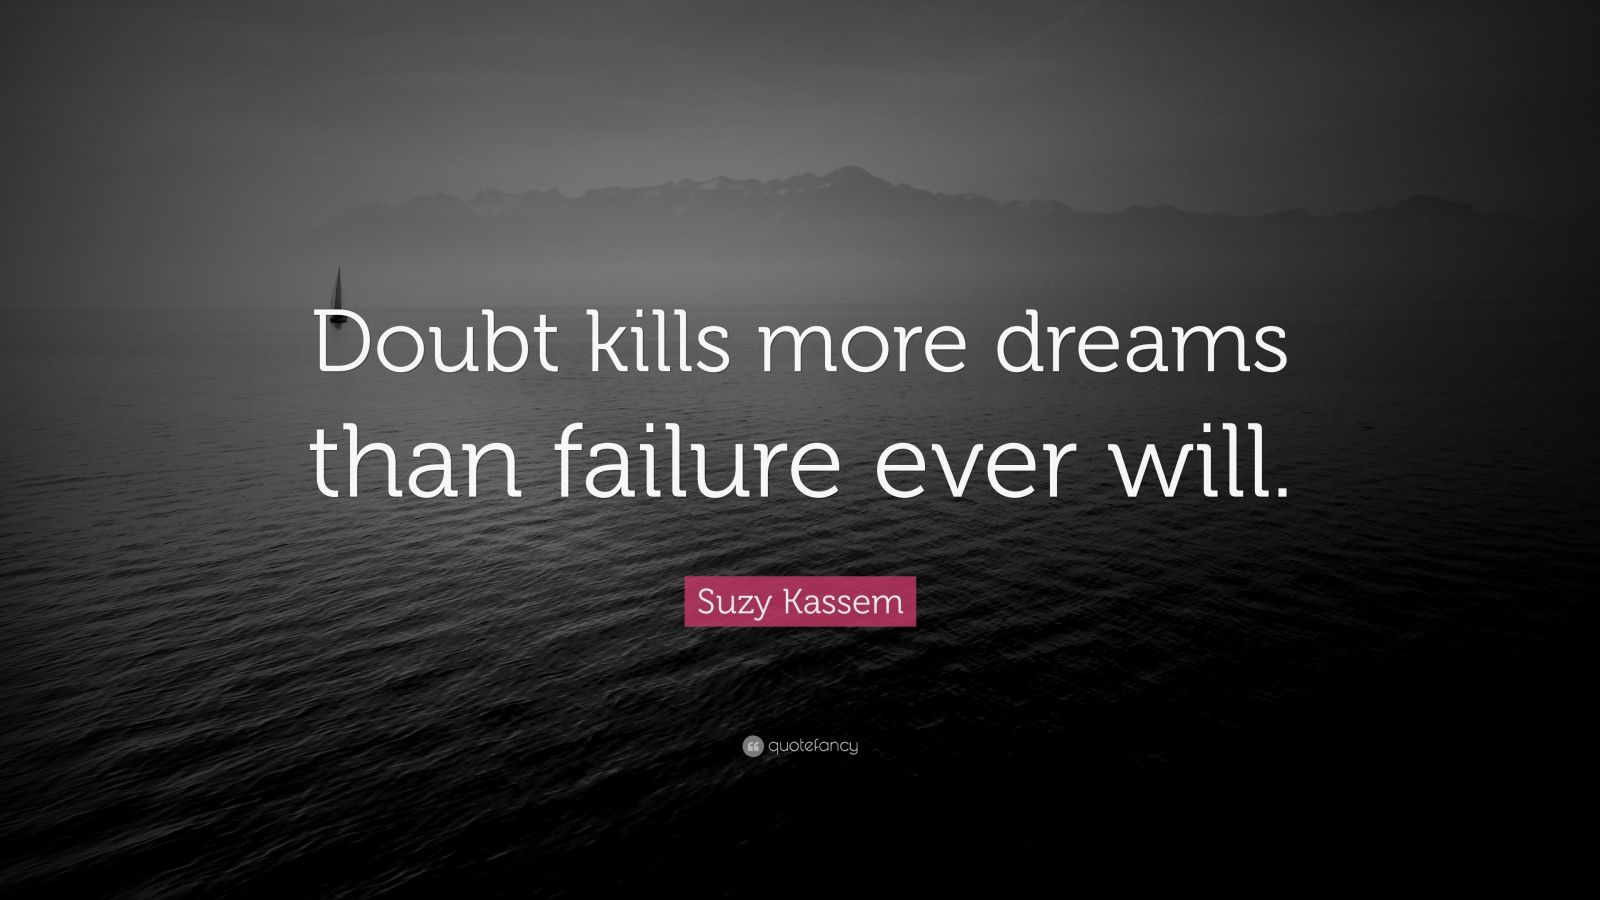 Courage Wallpapers Quotes Suzy Kassem Quote Doubt Kills More Dreams Than Failure